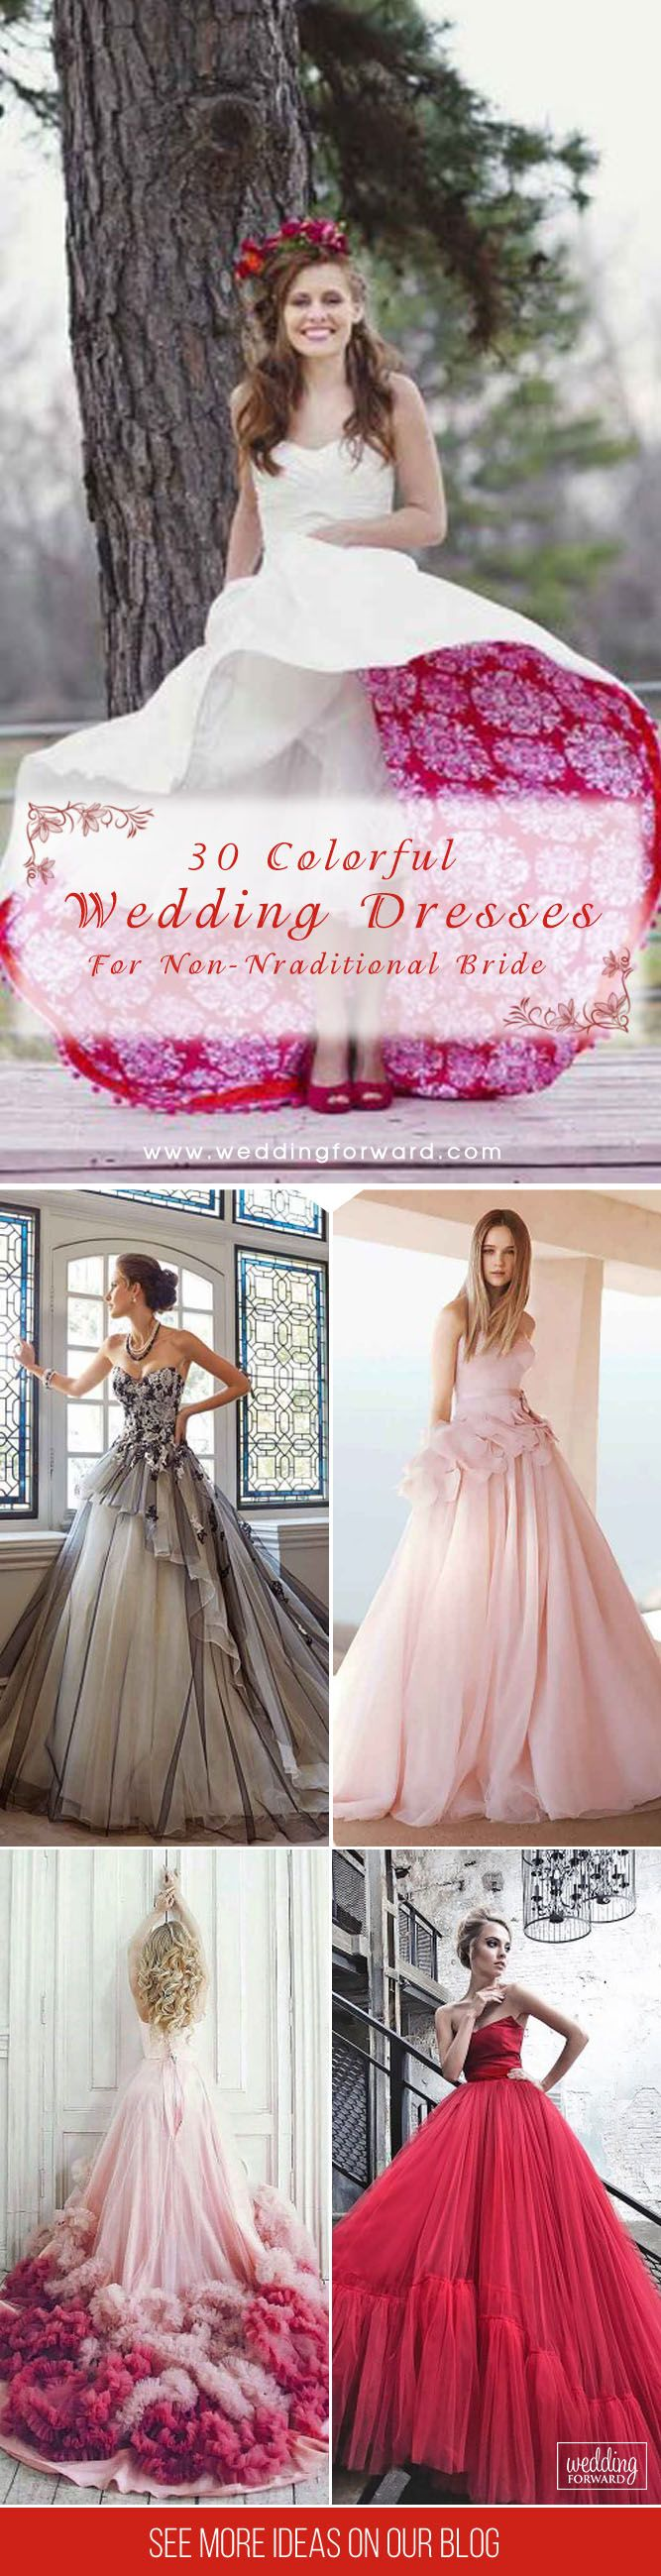 24 Colorful Wedding Dresses For Non-Traditional Bride | Pinterest ...